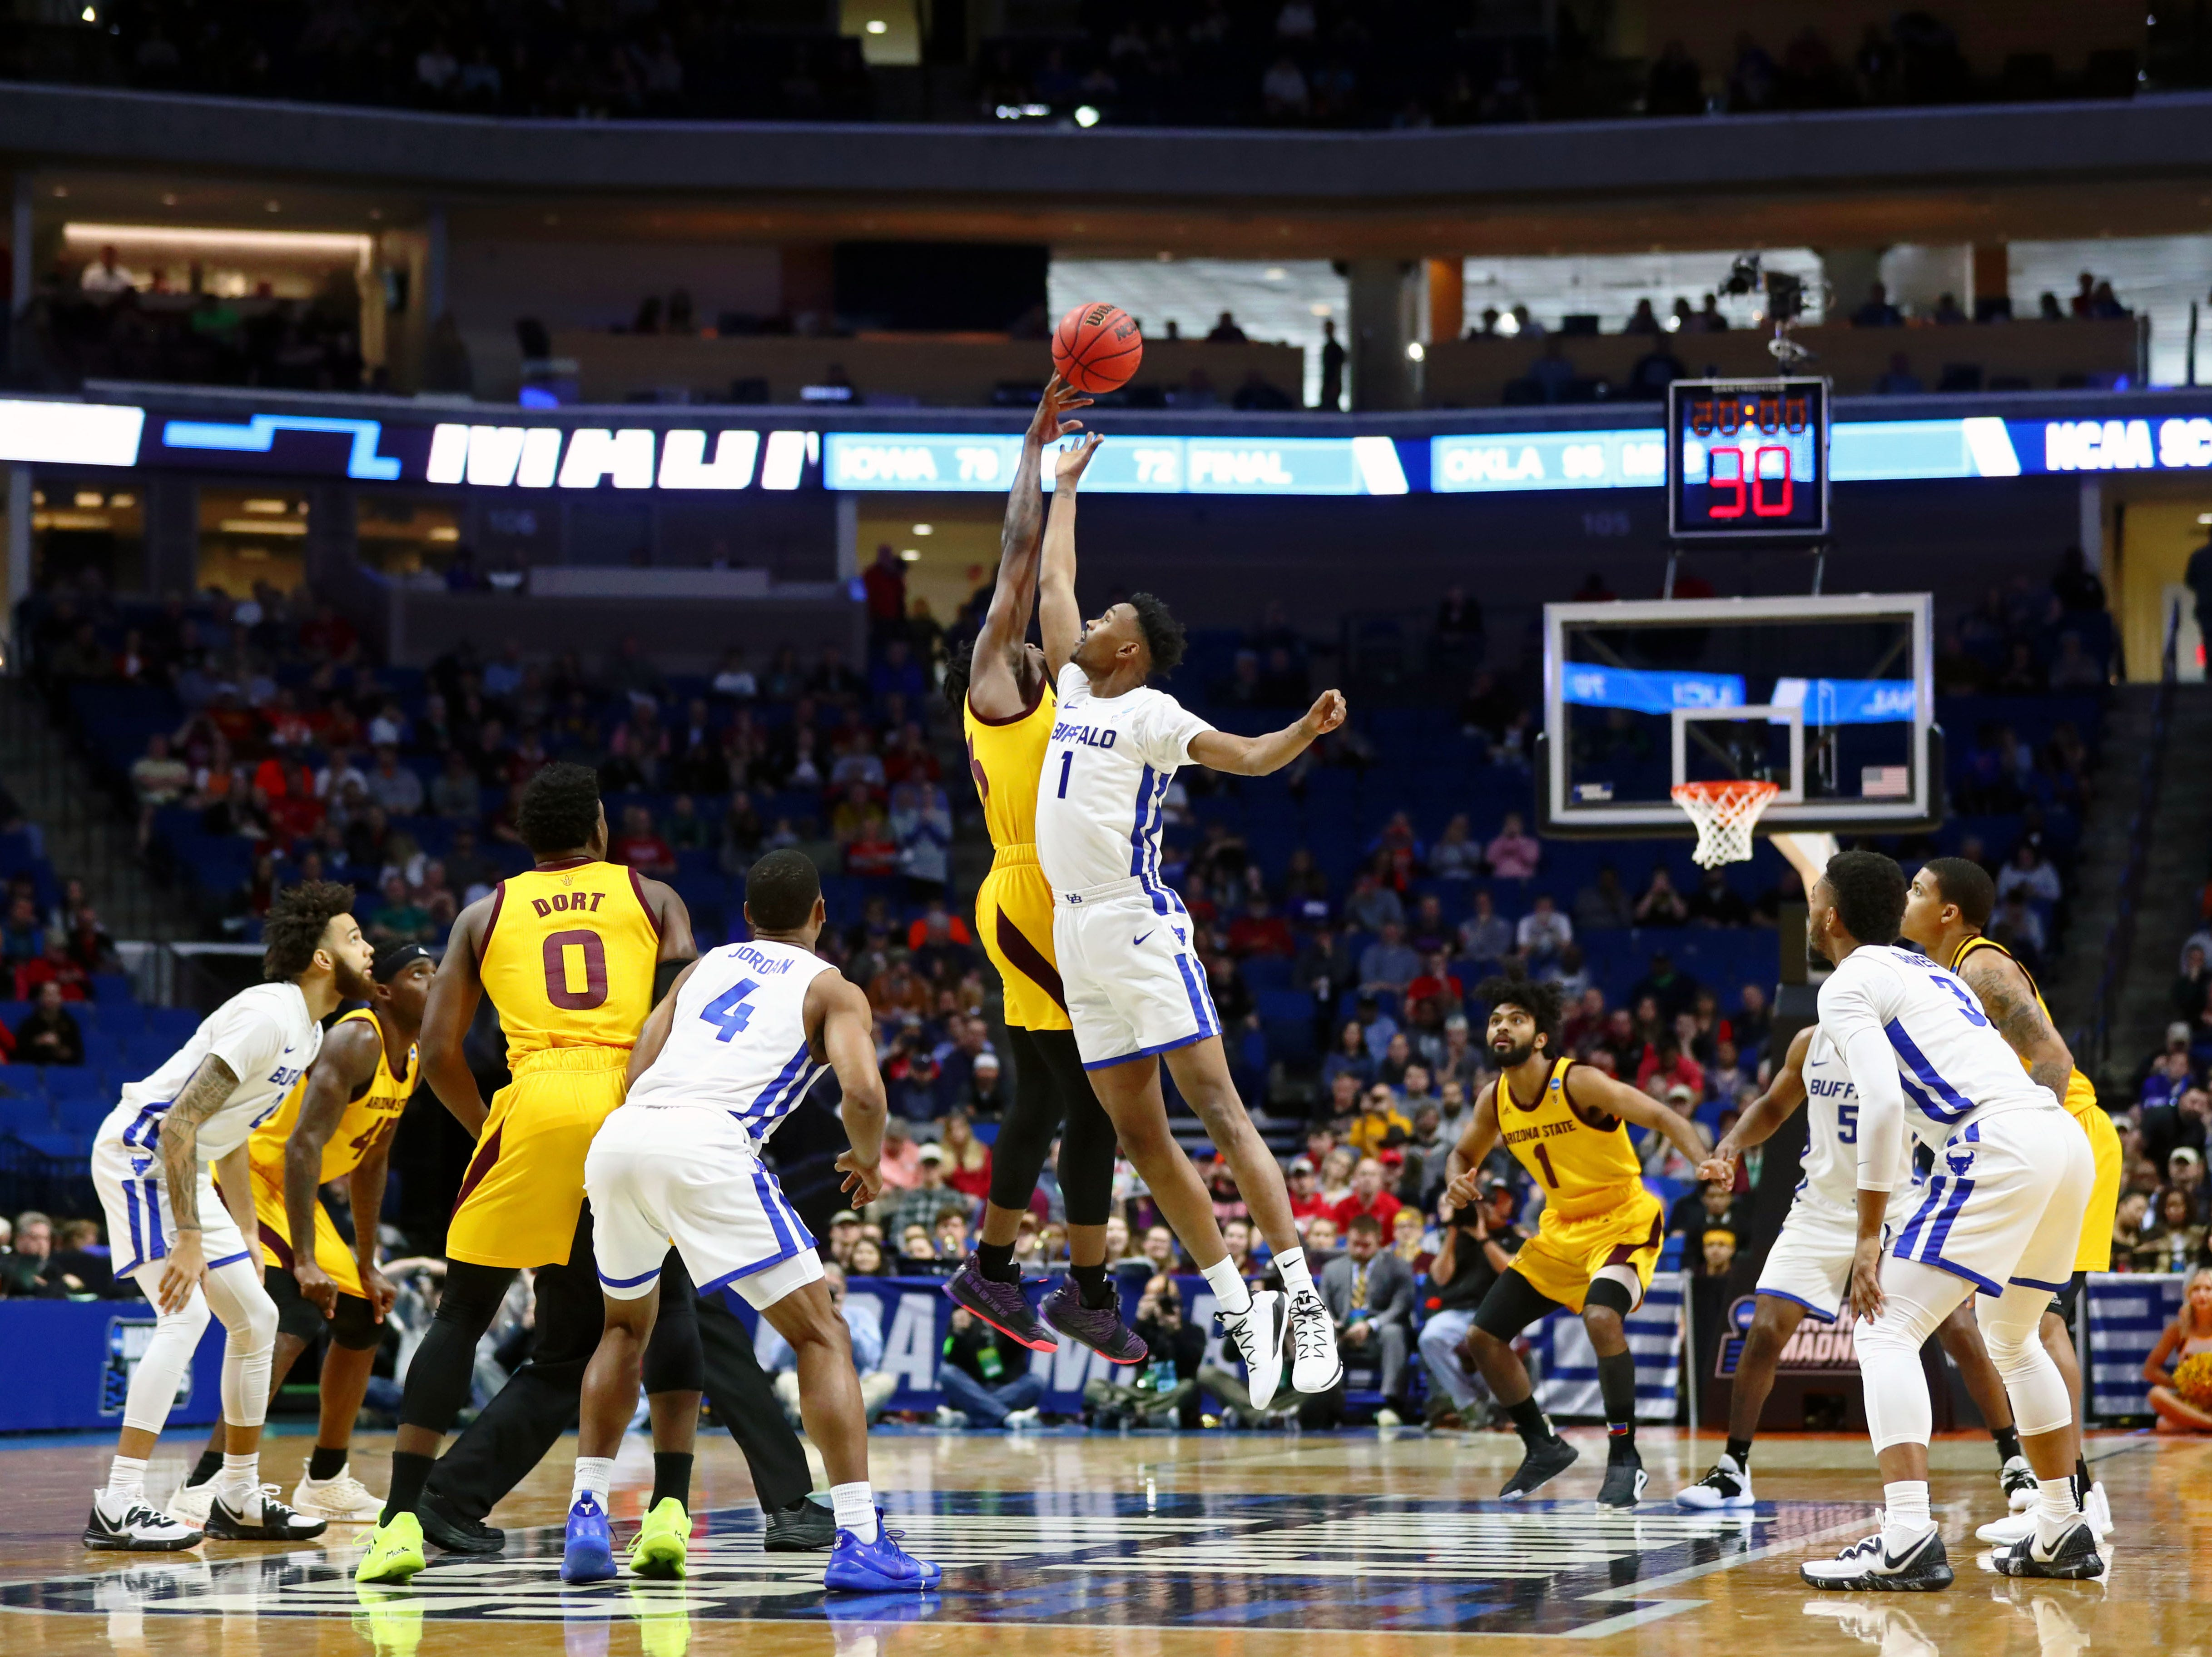 Mar 22, 2019; Tulsa, OK, USA; The tipoff at the start of the game between the Arizona State Sun Devils and the Buffalo Bulls in the first round of the 2019 NCAA Tournament at BOK Center. Mandatory Credit: Mark J. Rebilas-USA TODAY Sports